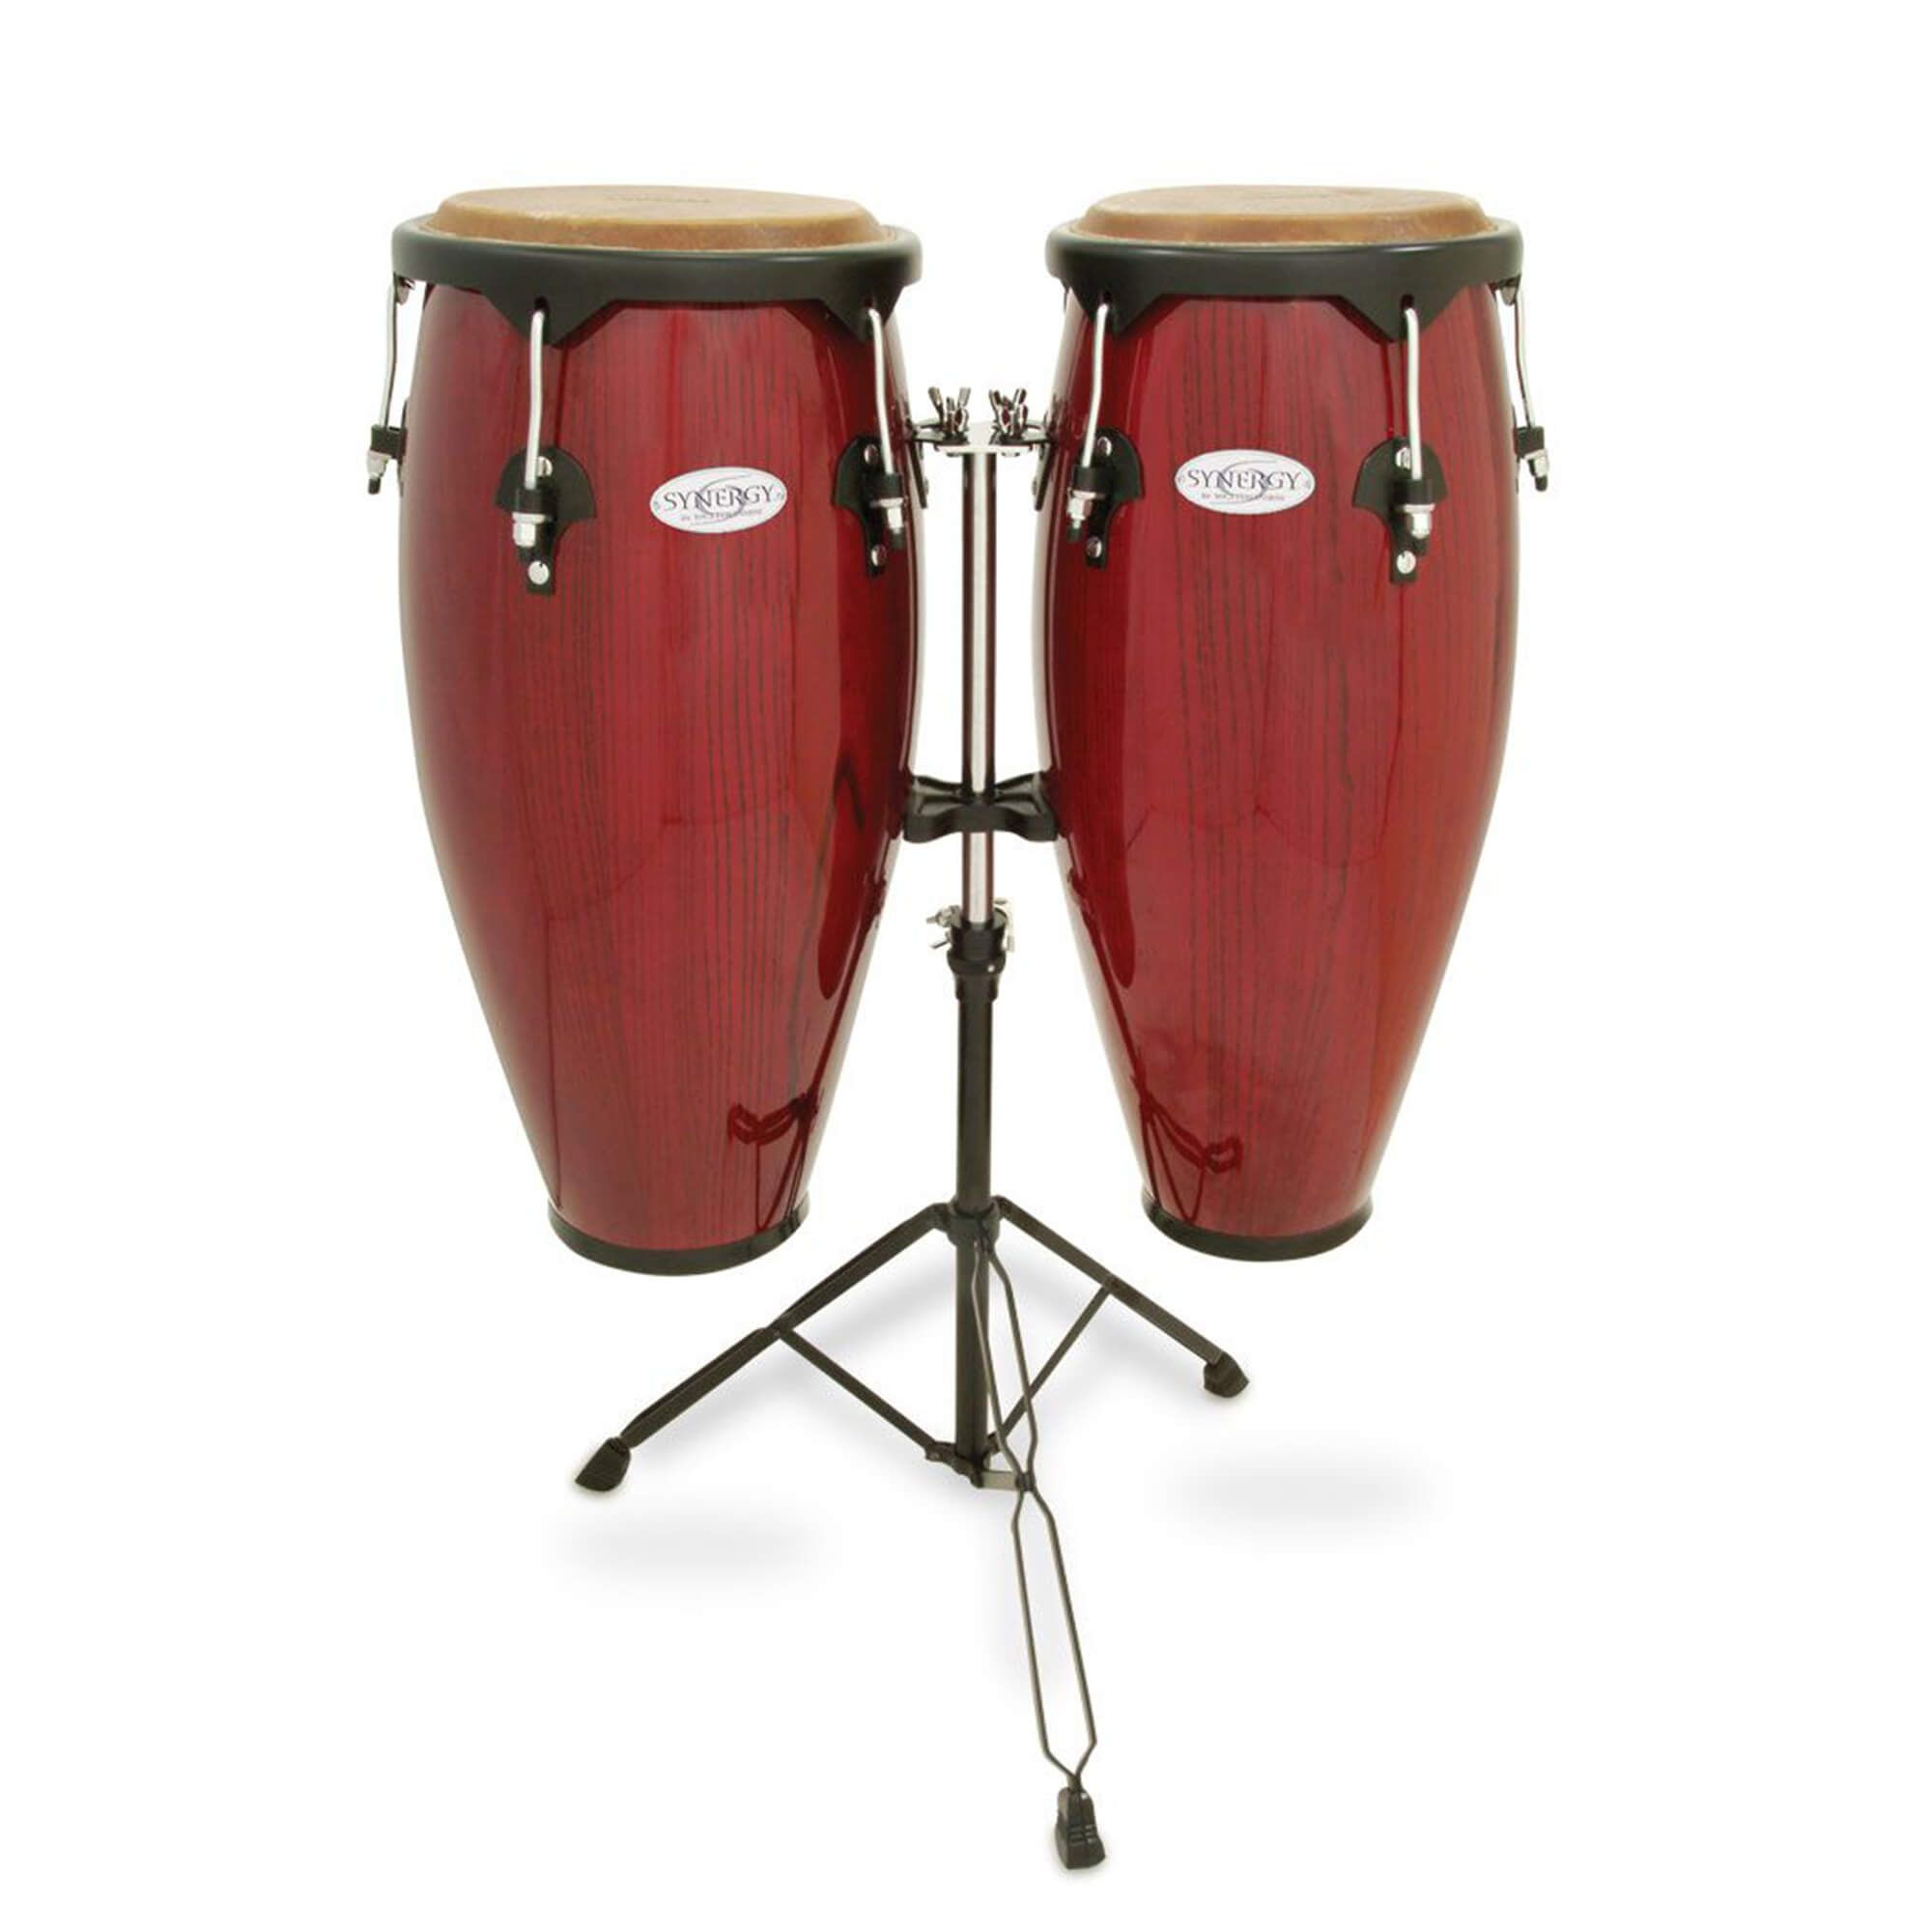 Toca 2300RR Synergy Series Wood Conga Set with Stand - Red Wood